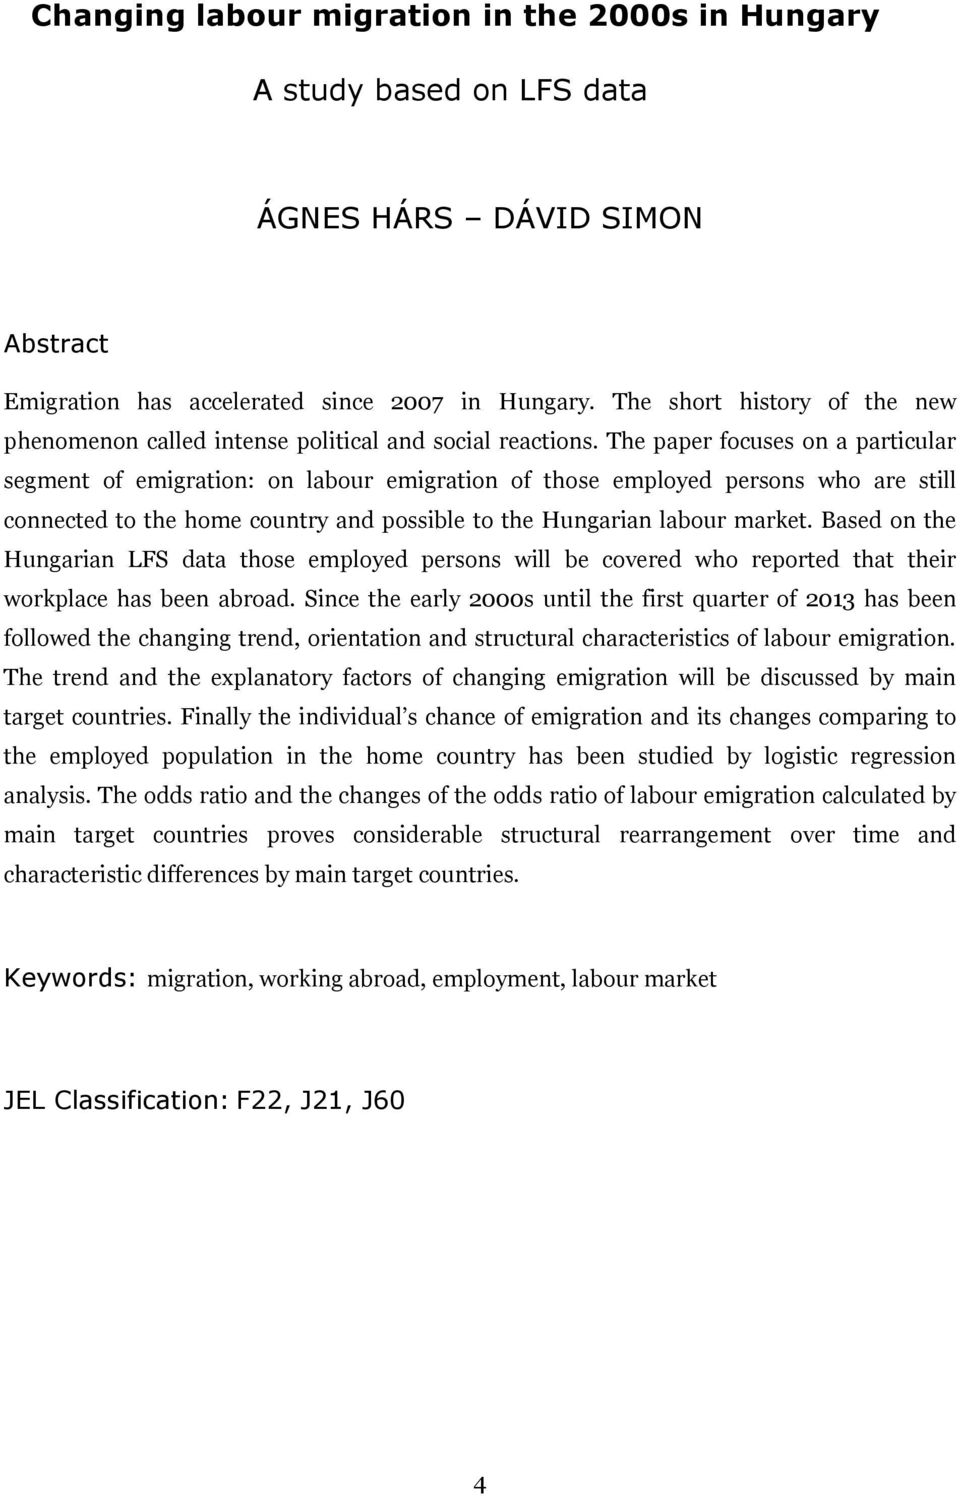 The paper focuses on a particular segment of emigration: on labour emigration of those employed persons who are still connected to the home country and possible to the Hungarian labour market.